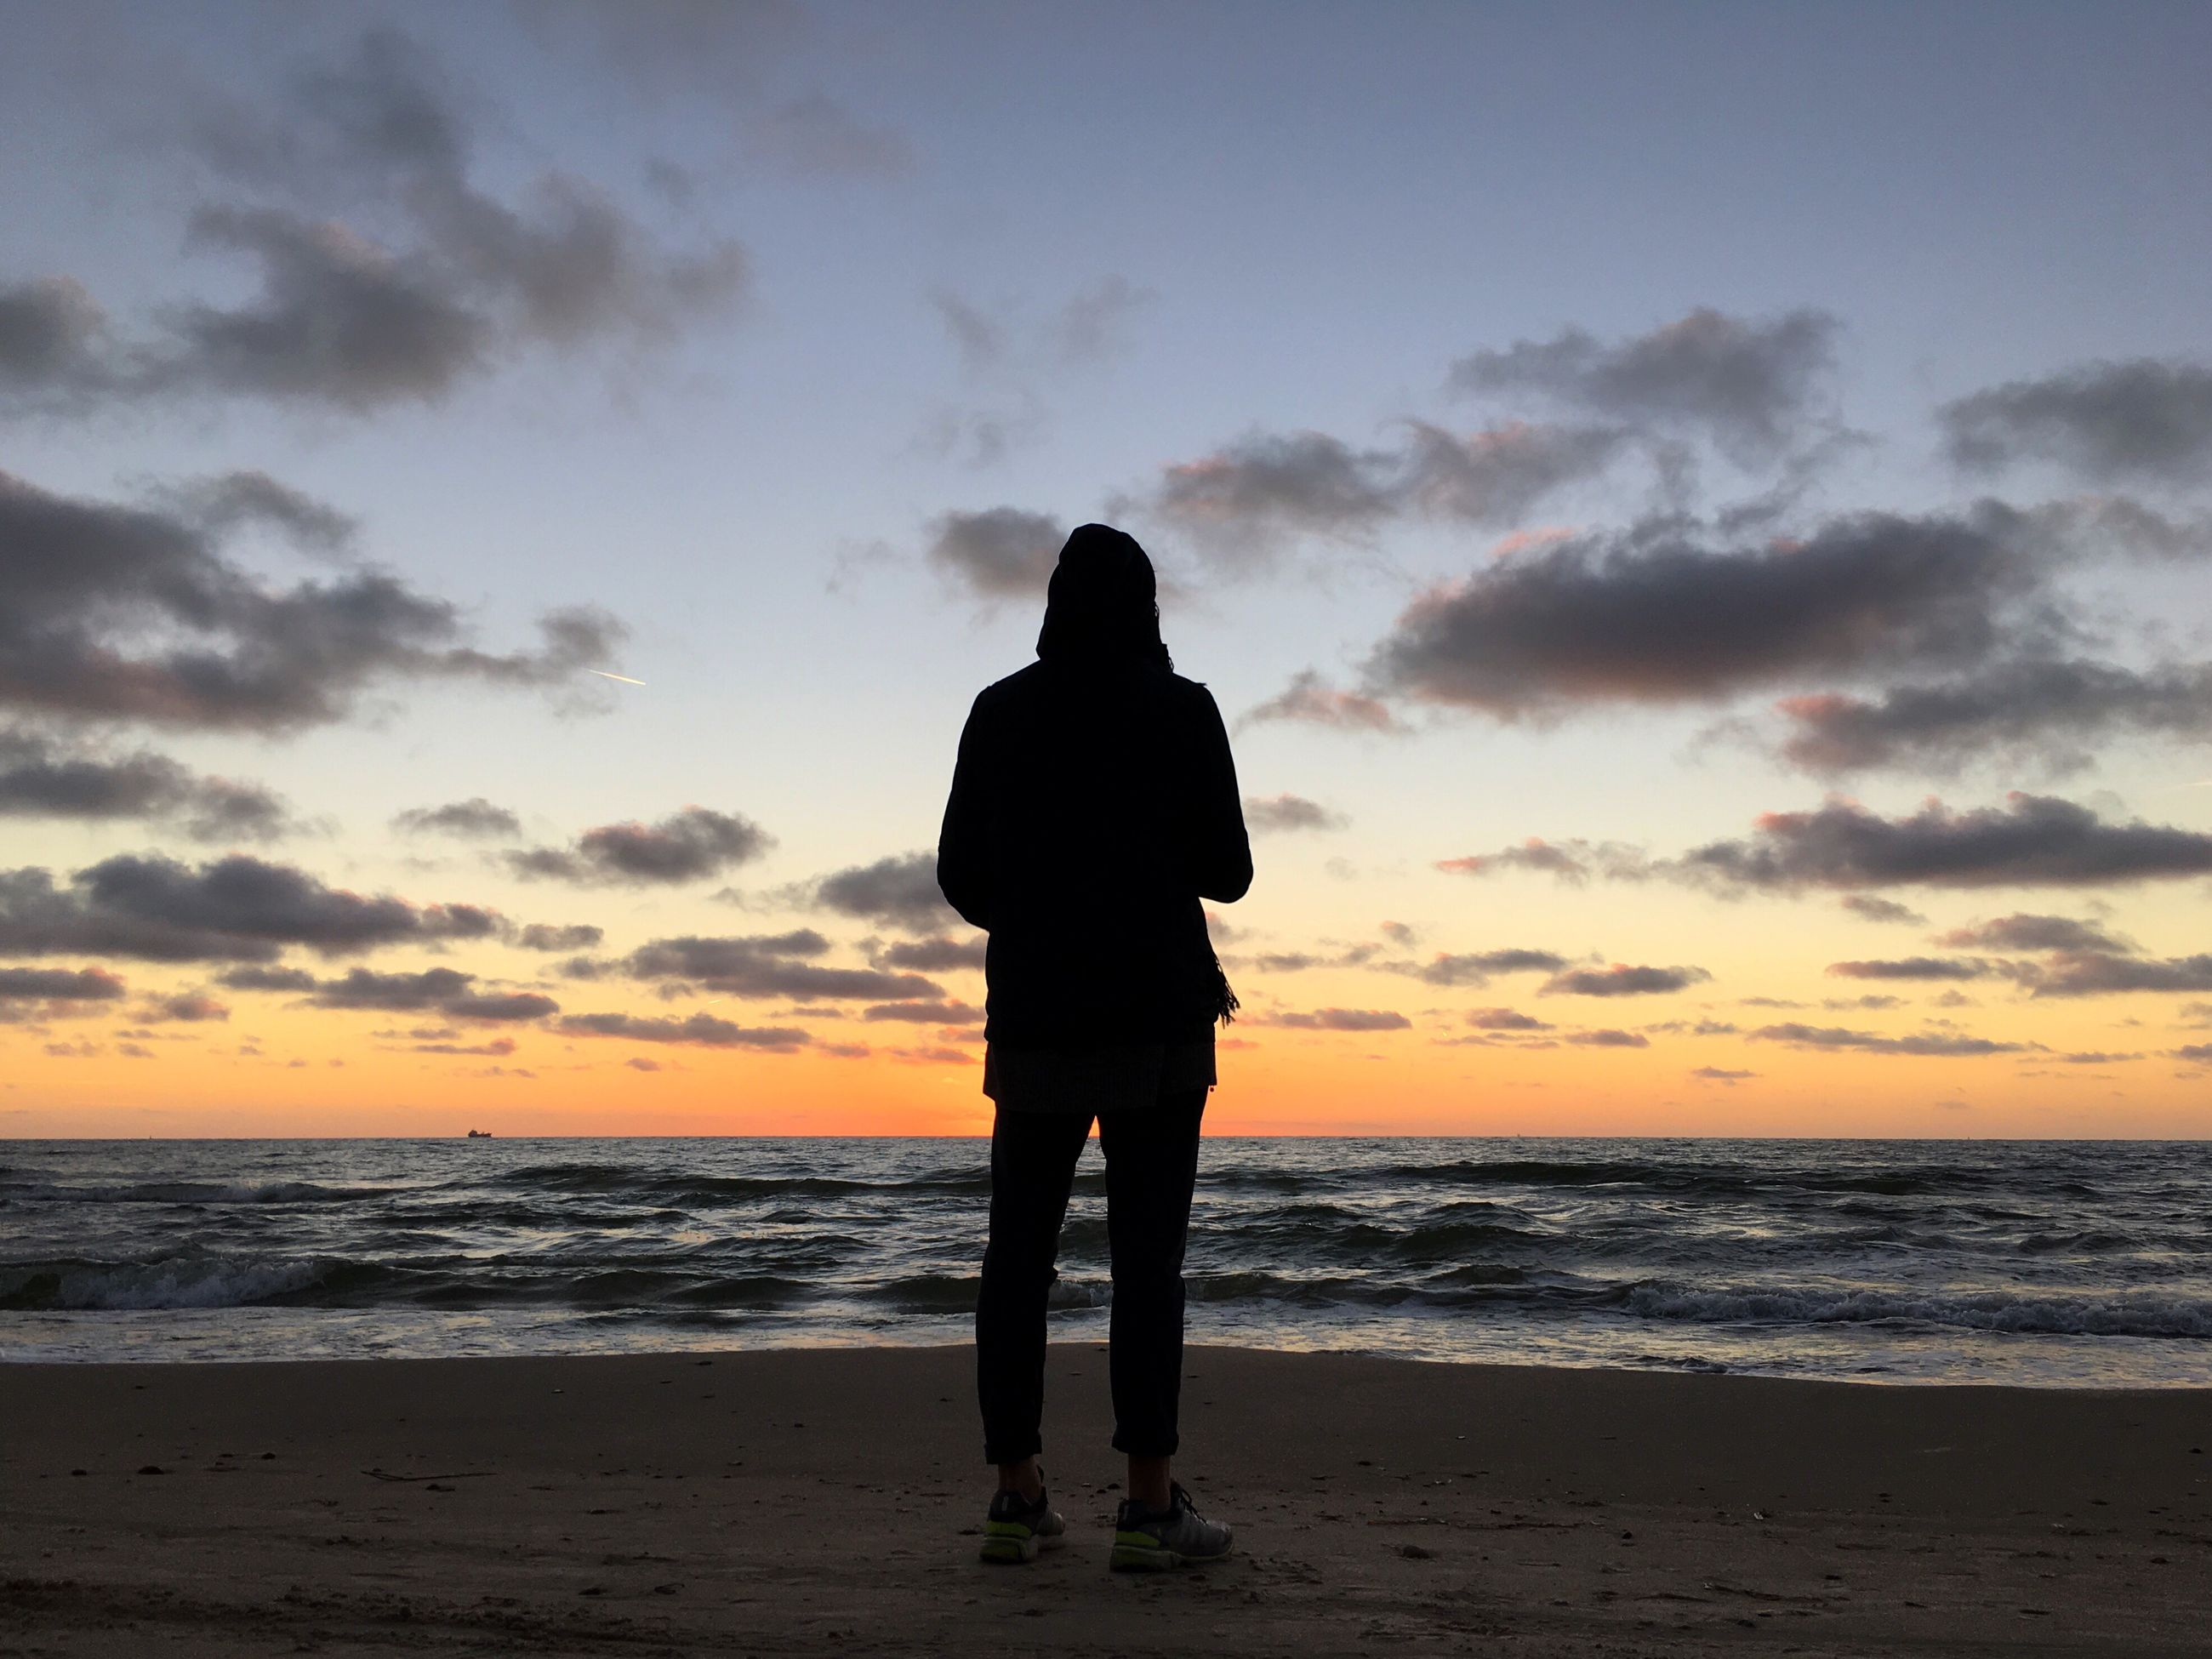 sunset, silhouette, beach, sky, one person, sea, cloud - sky, teenager, lifestyles, outdoors, nature, vacations, people, men, horizon over water, beauty in nature, adult, human body part, one man only